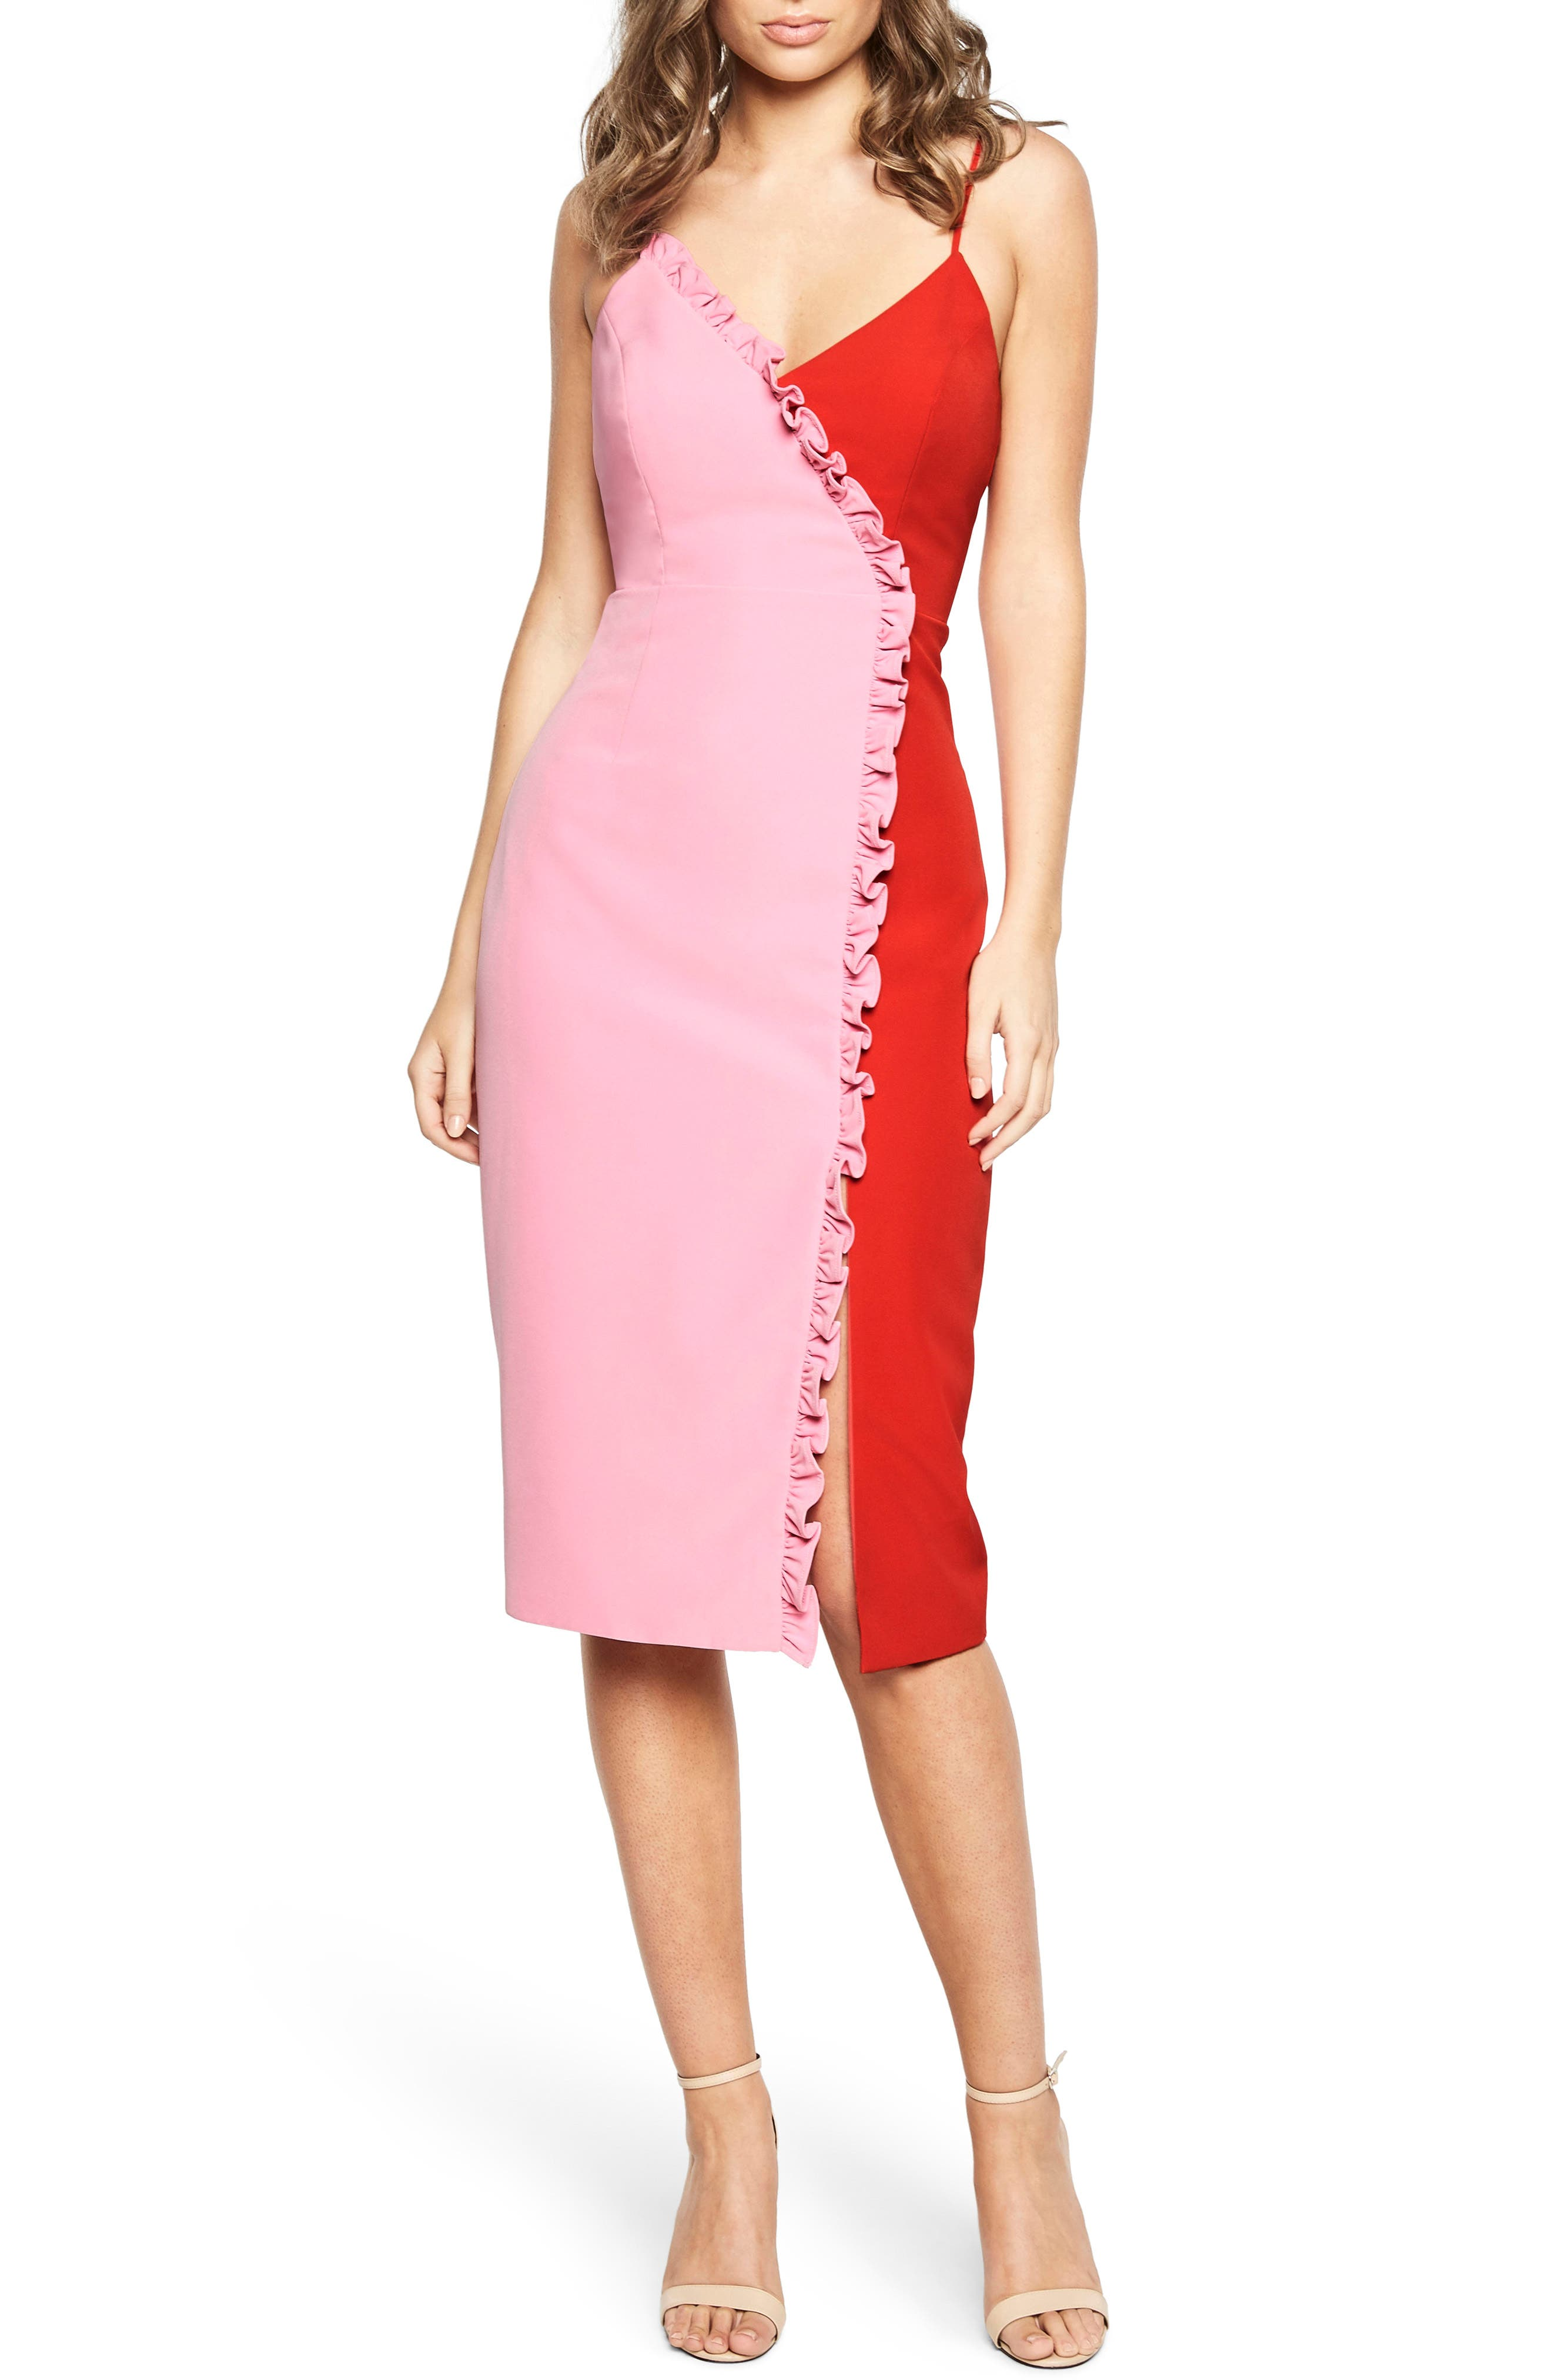 Sherbert Bomb Midi Dress,                             Main thumbnail 1, color,                             650